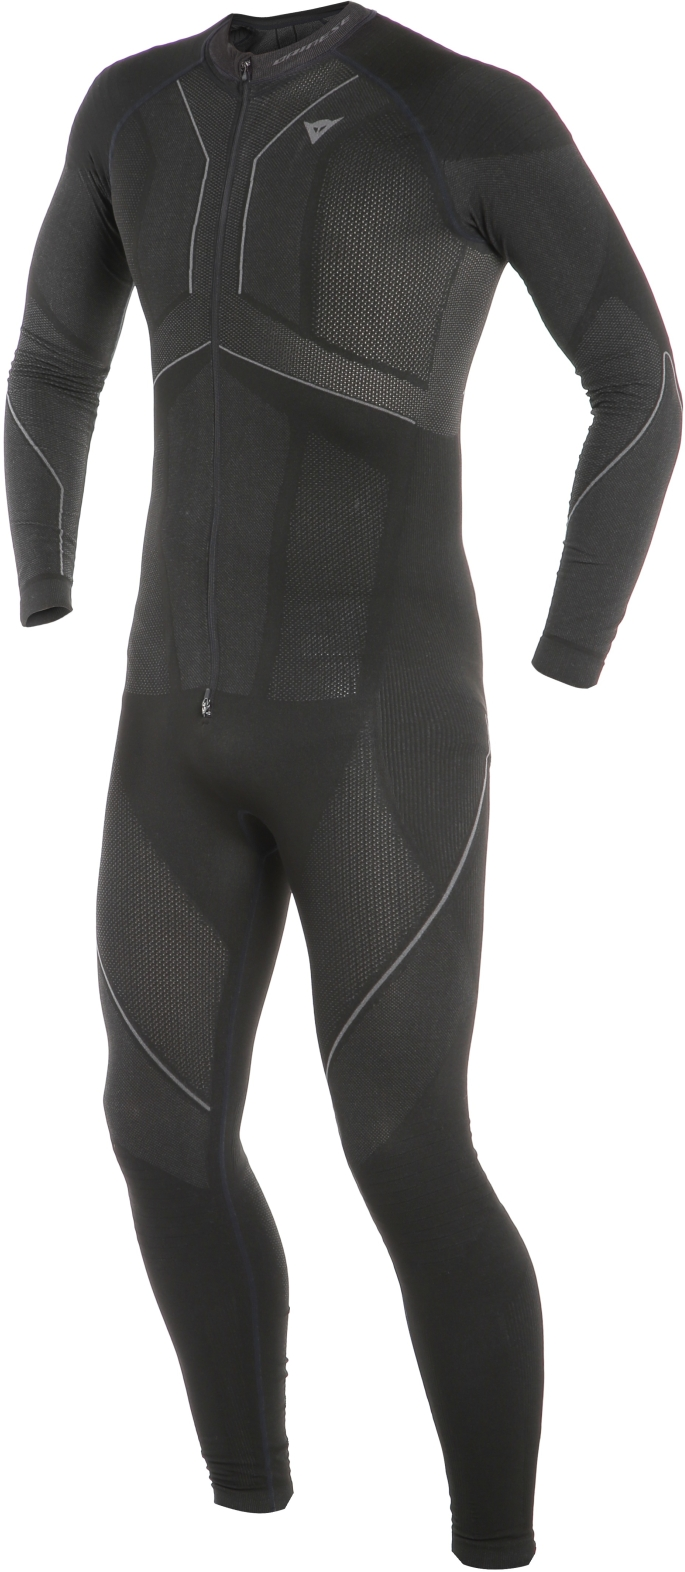 D-CORE AIR SUIT